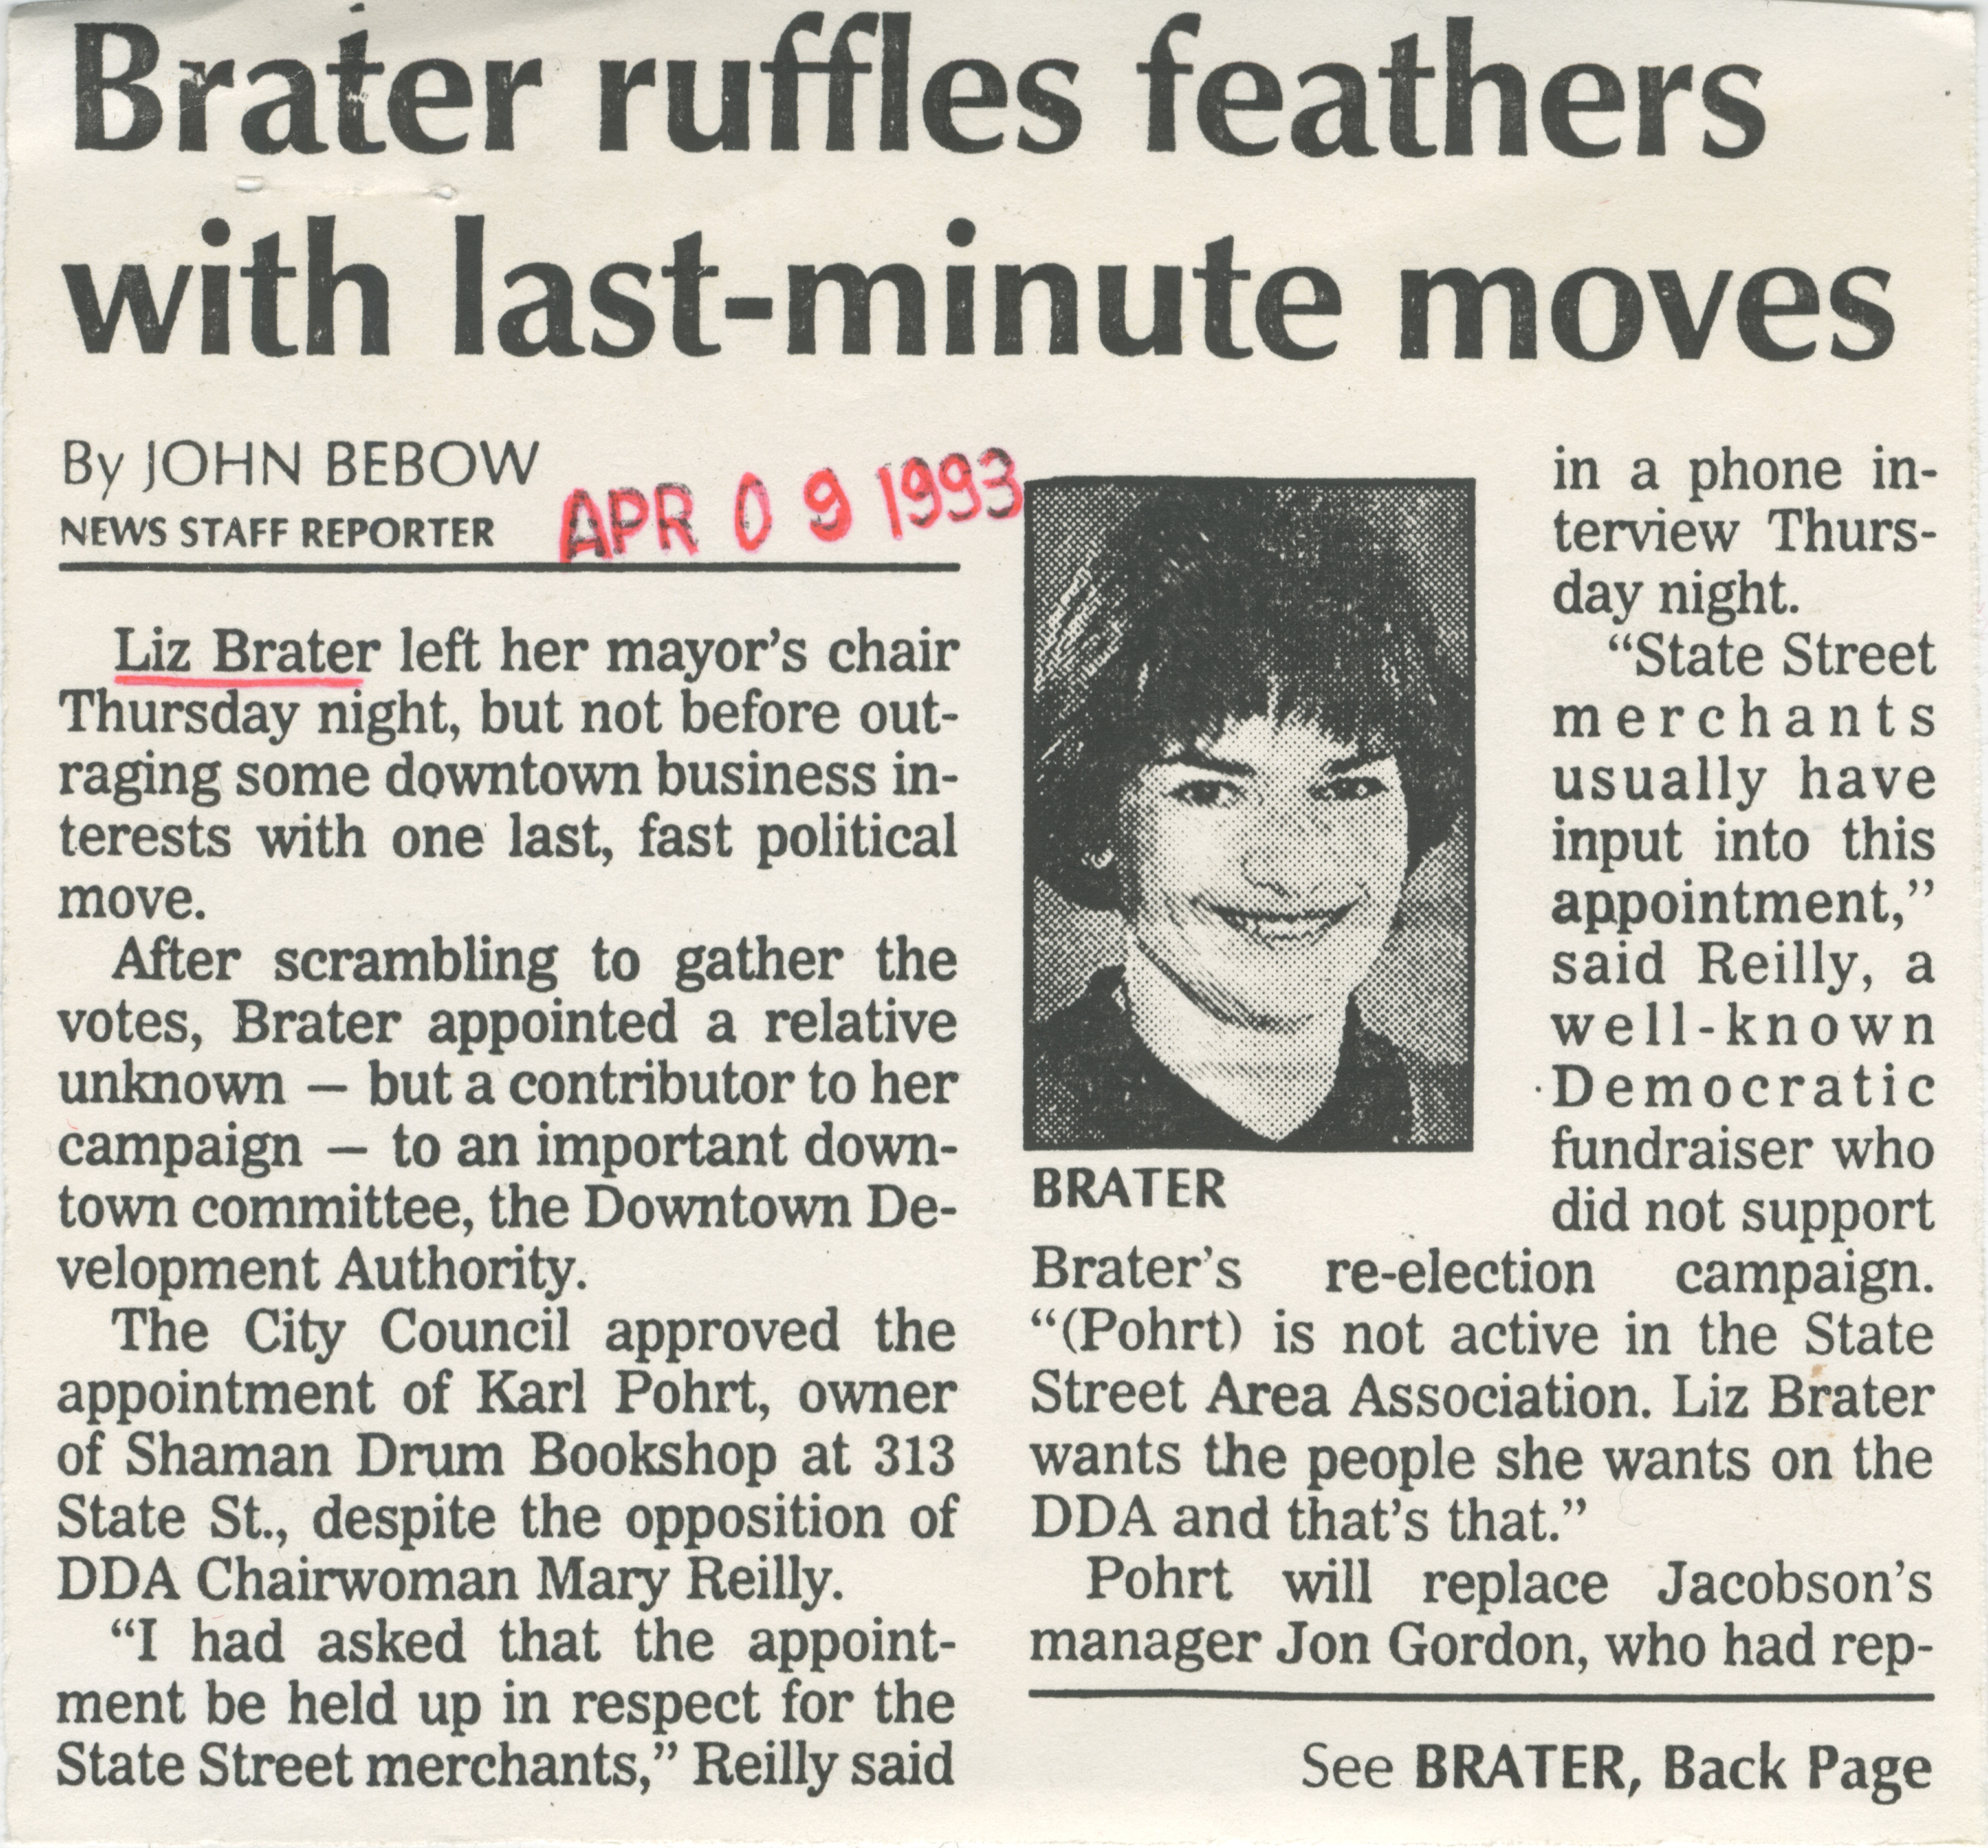 Brater ruffles feathers with last-minute moves image